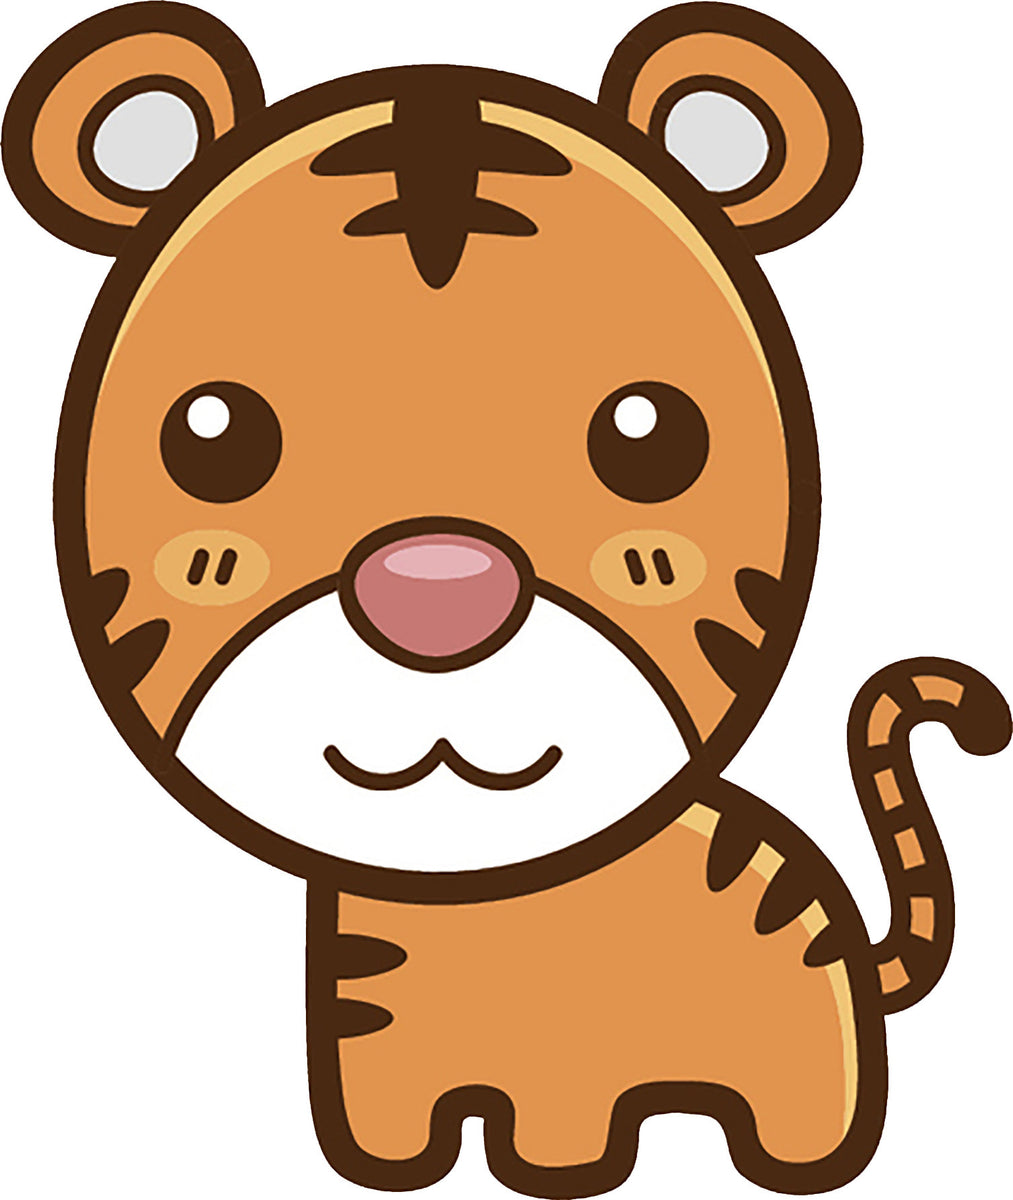 Cute Simple Kawaii Animal Cartoon Icon - Tiger Vinyl Decal ...